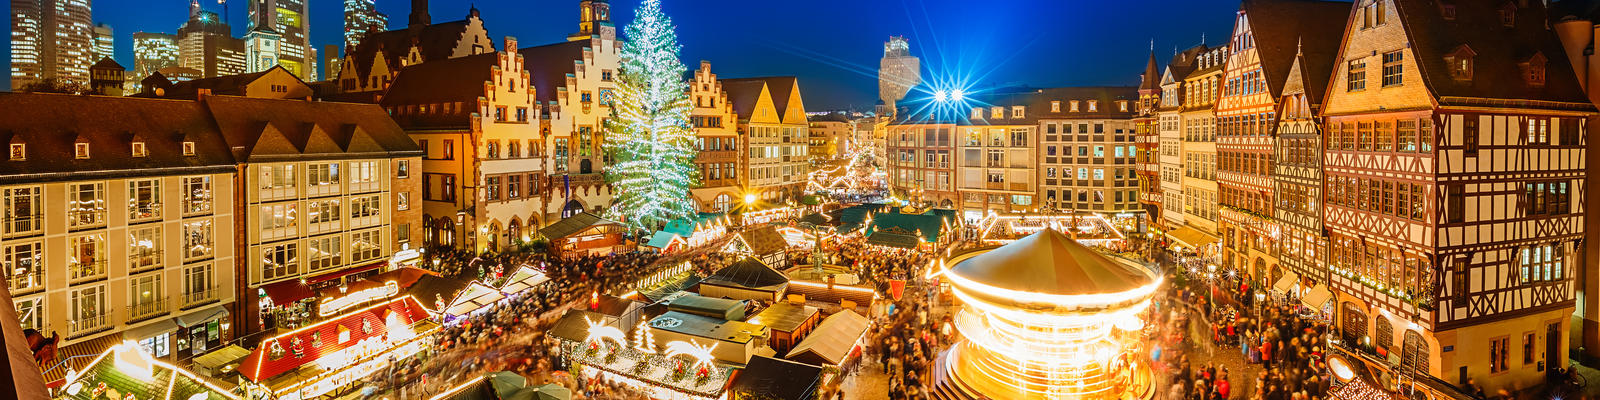 Christmas market in Frankfurt, Germany (Photo: S.Borisov/Shutterstock)